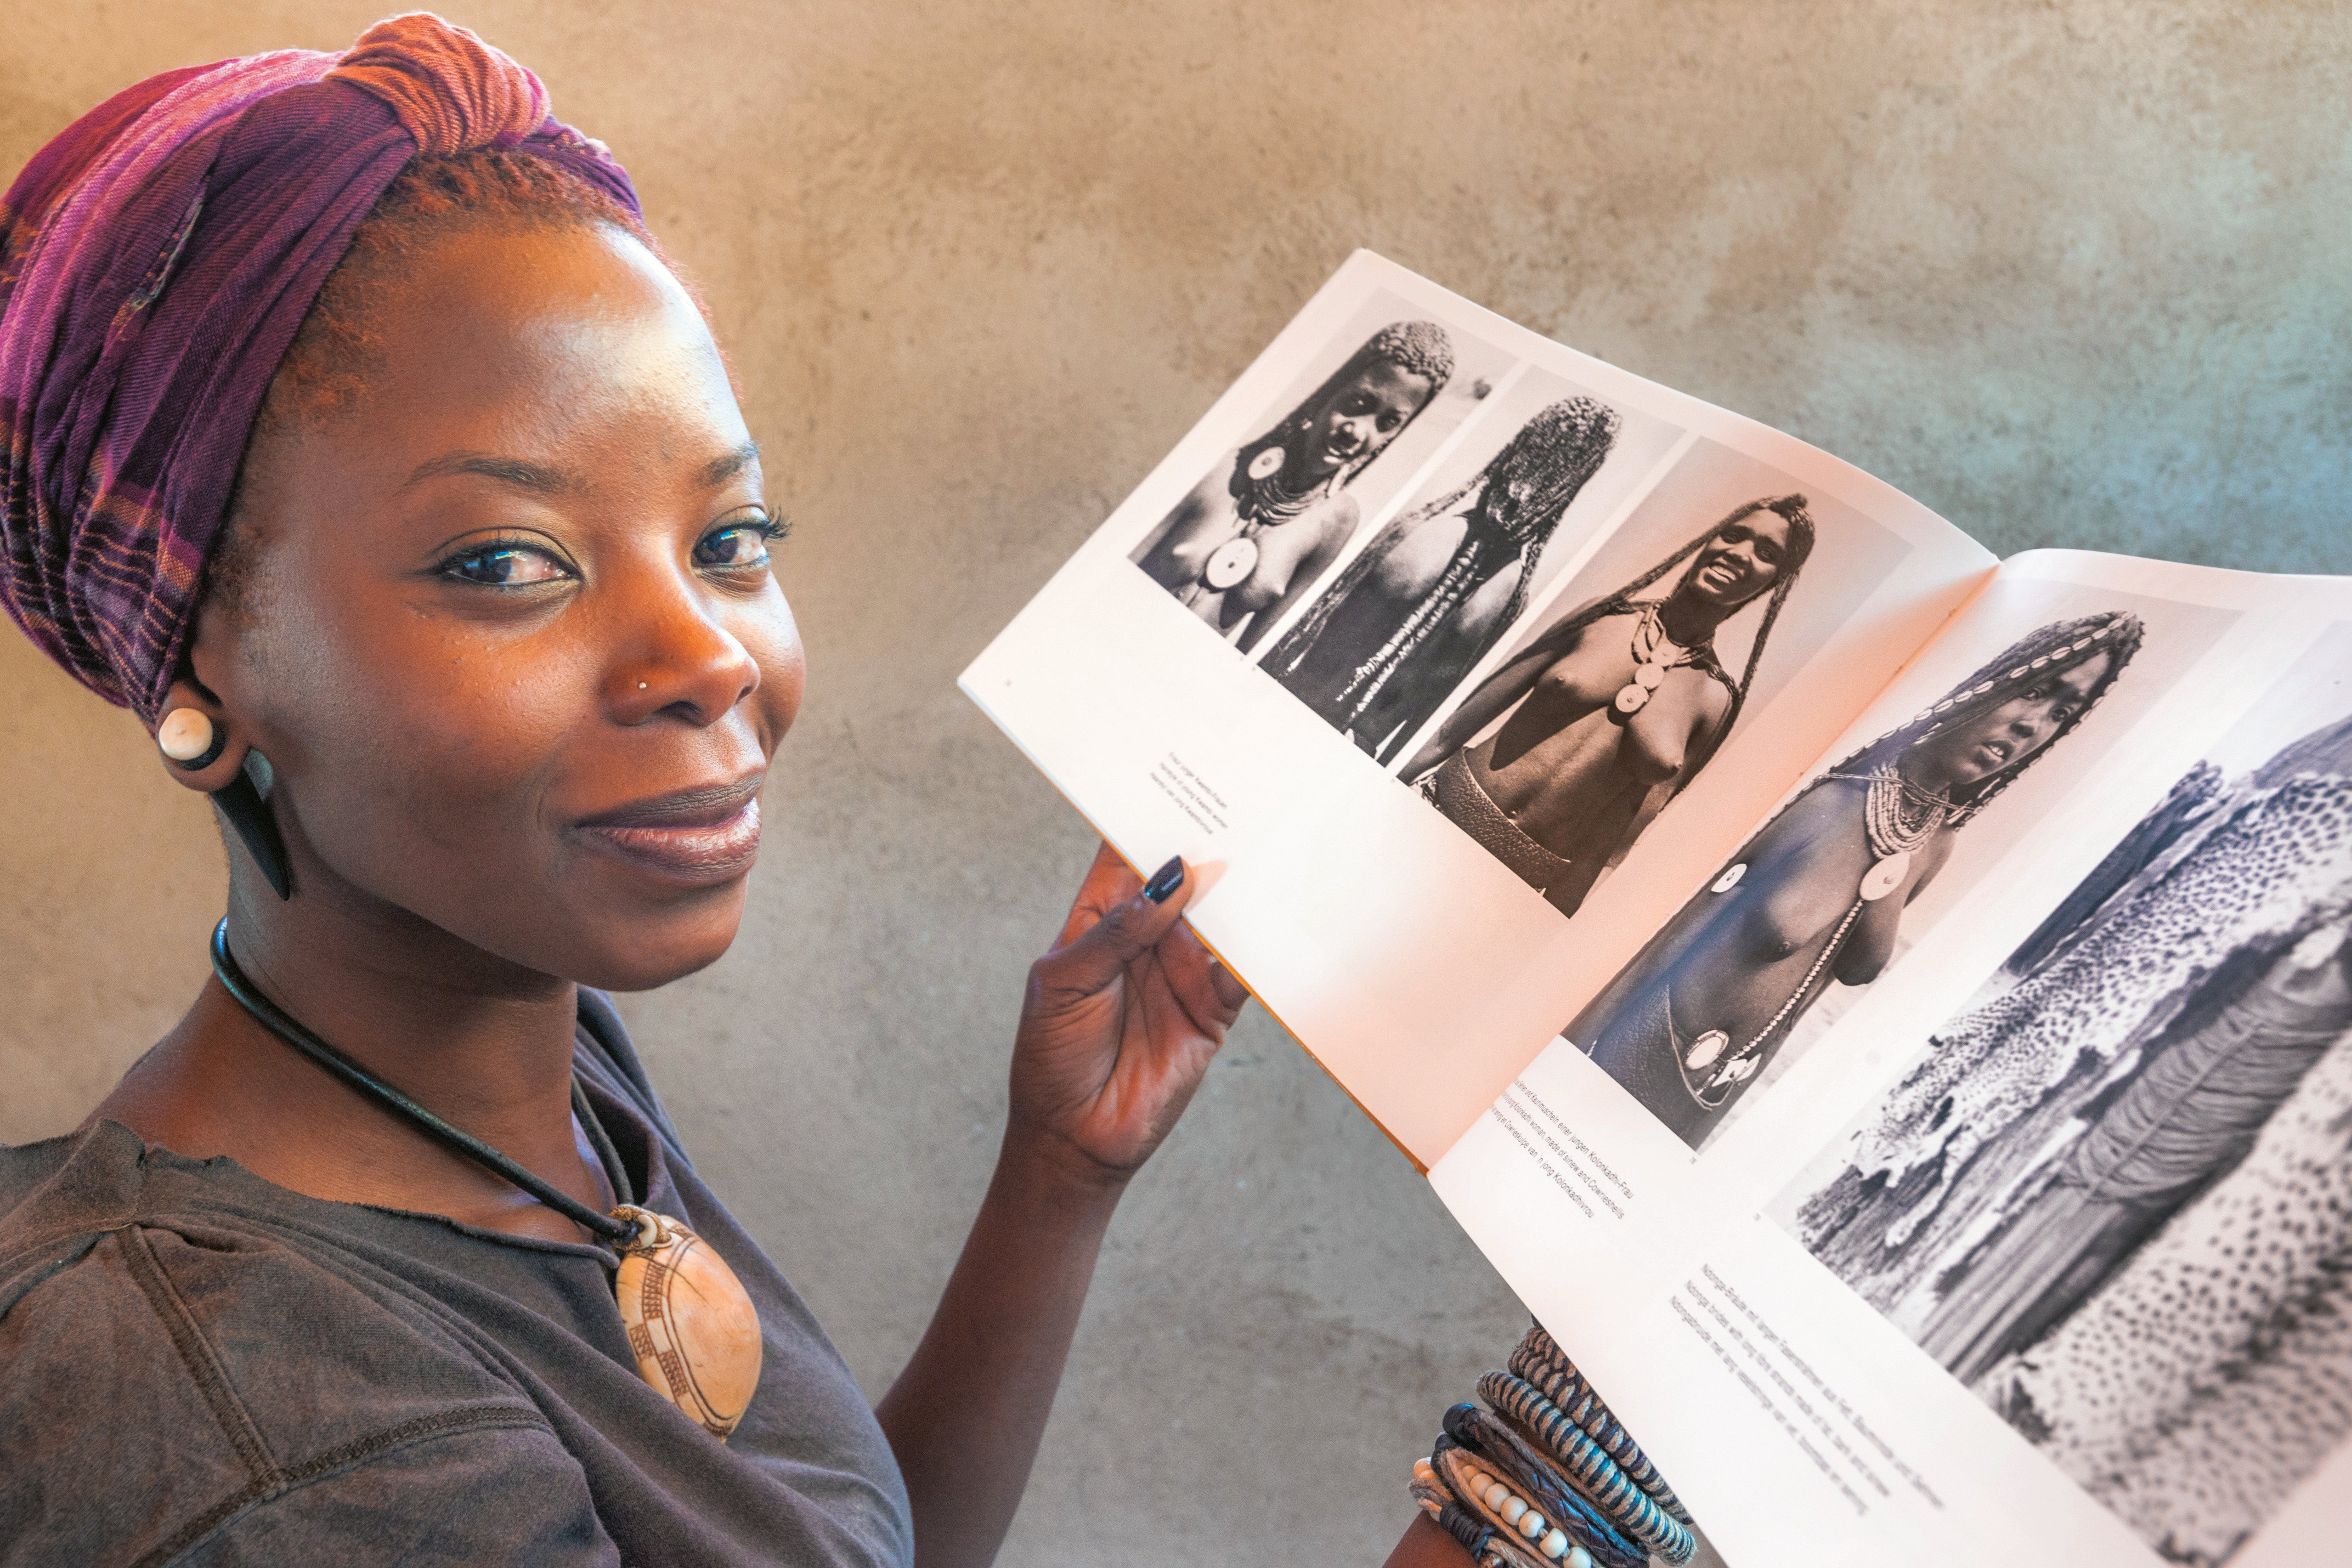 A Namibian woman with historical photos of tribal women from Ovamboland, Namibia.